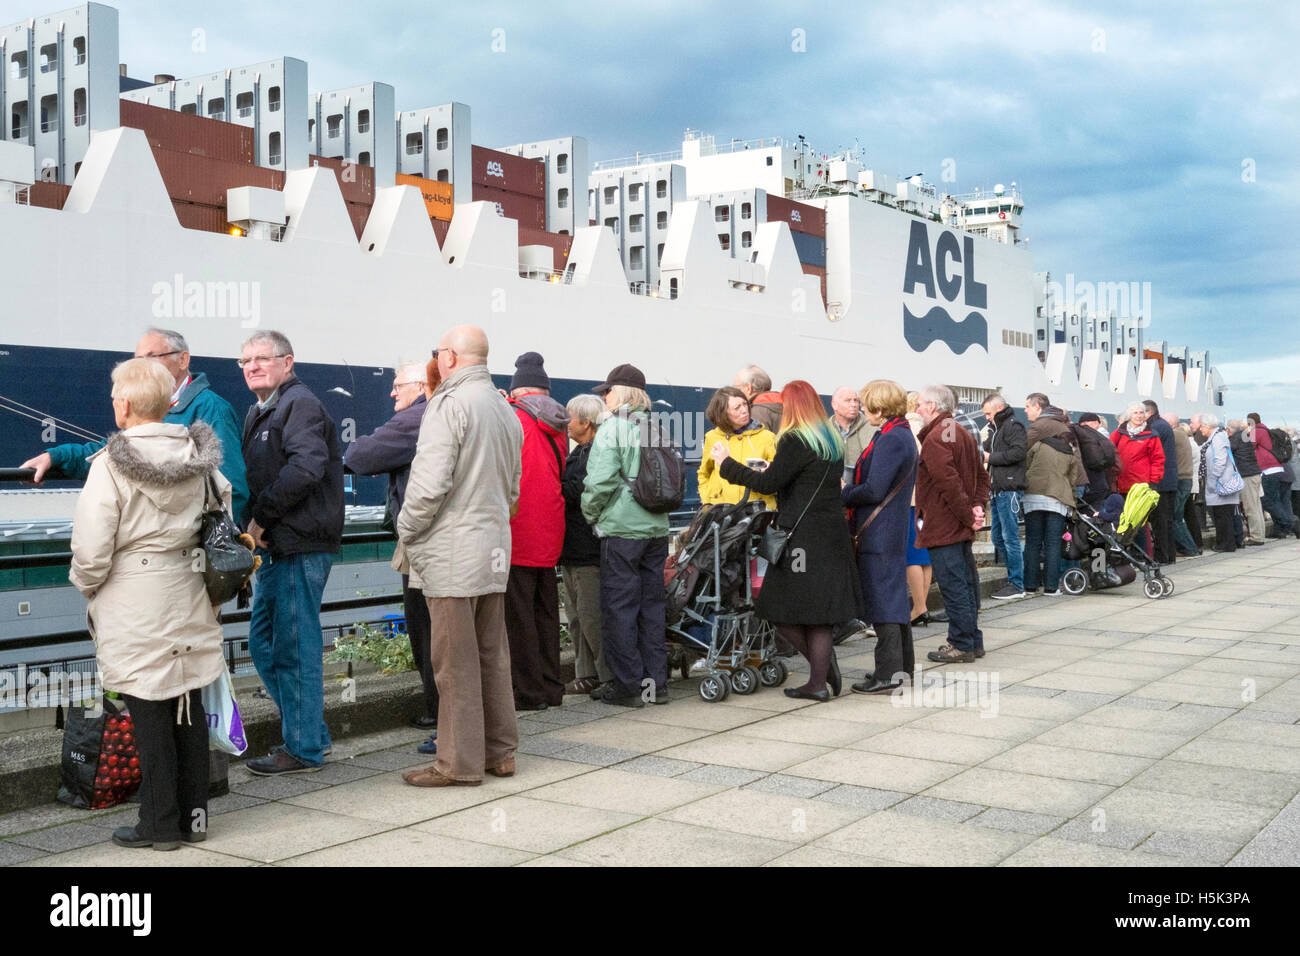 ACL 'Atlantic Sea' Royal christening, Liverpool, Merseyside, 2016, - Stock Image